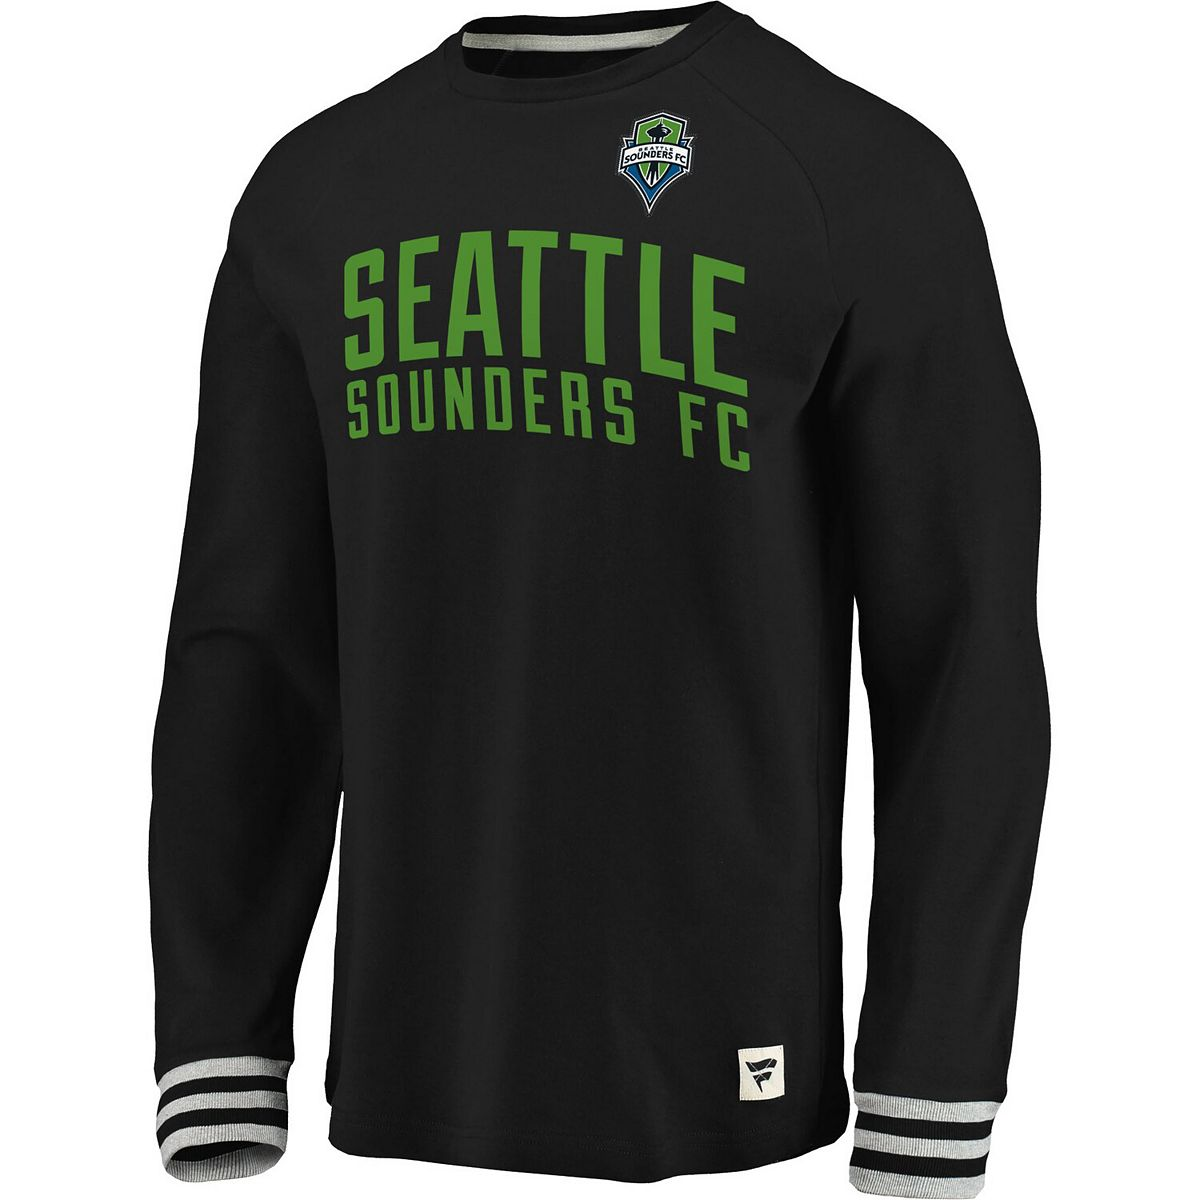 Men's Fanatics Branded Black/Heathered Gray Seattle Sounders FC Heritage Long Sleeve T-Shirt p5CC8